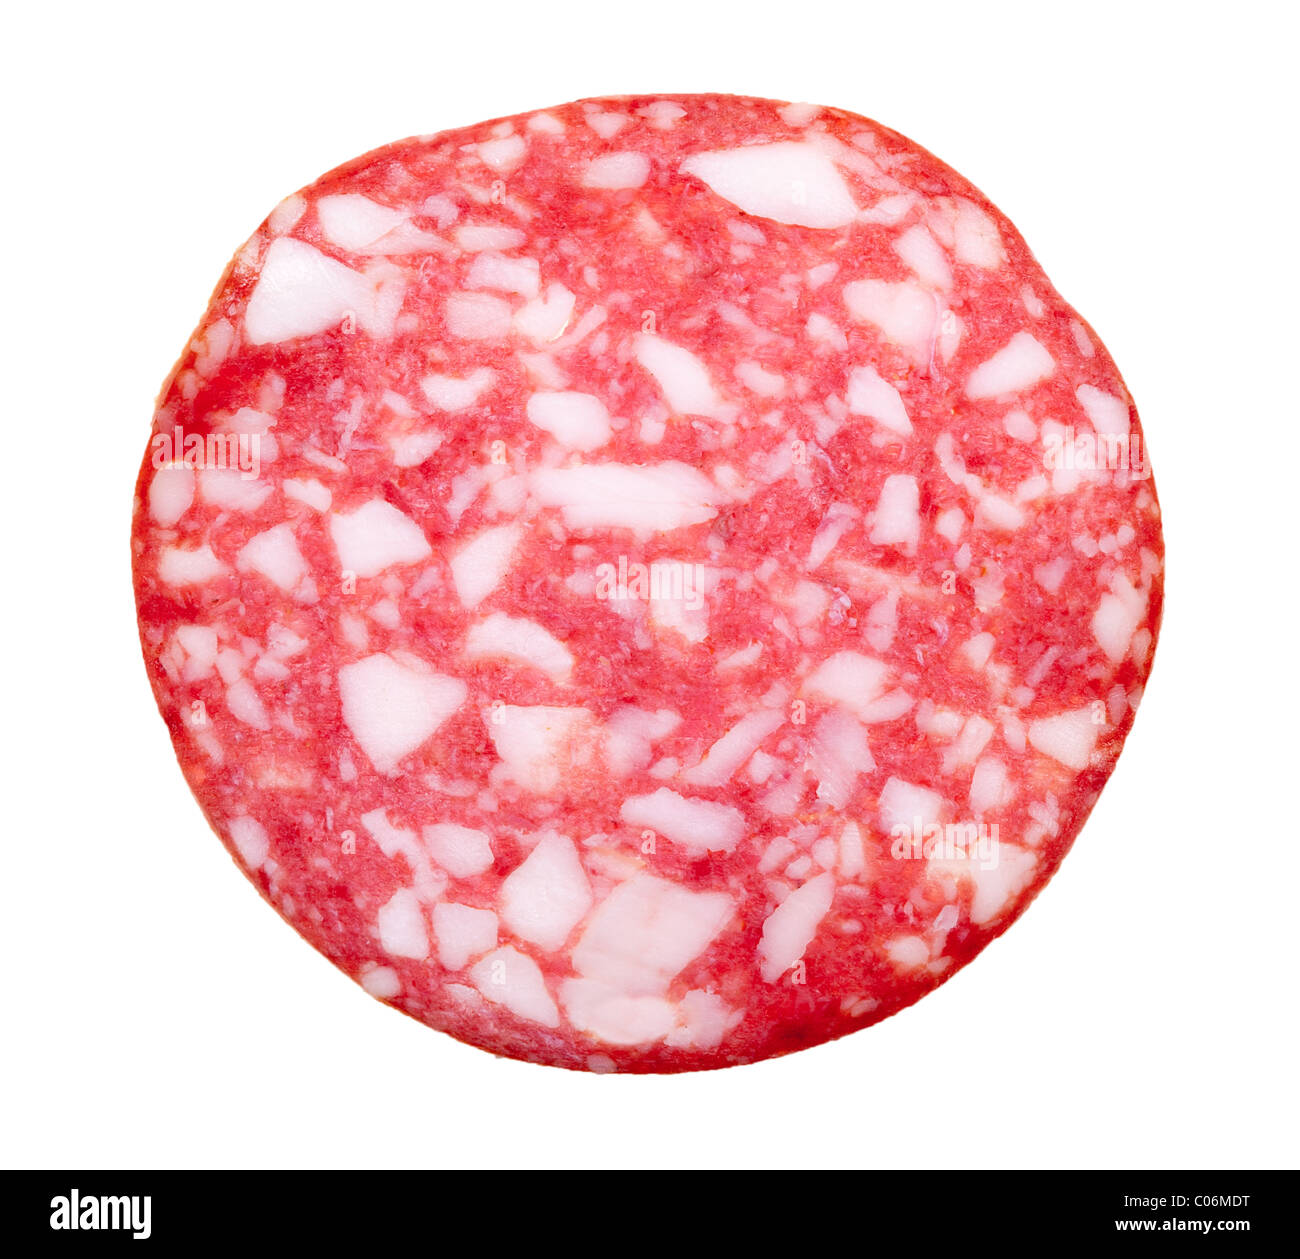 slice of salami isolated on a white background - Stock Image